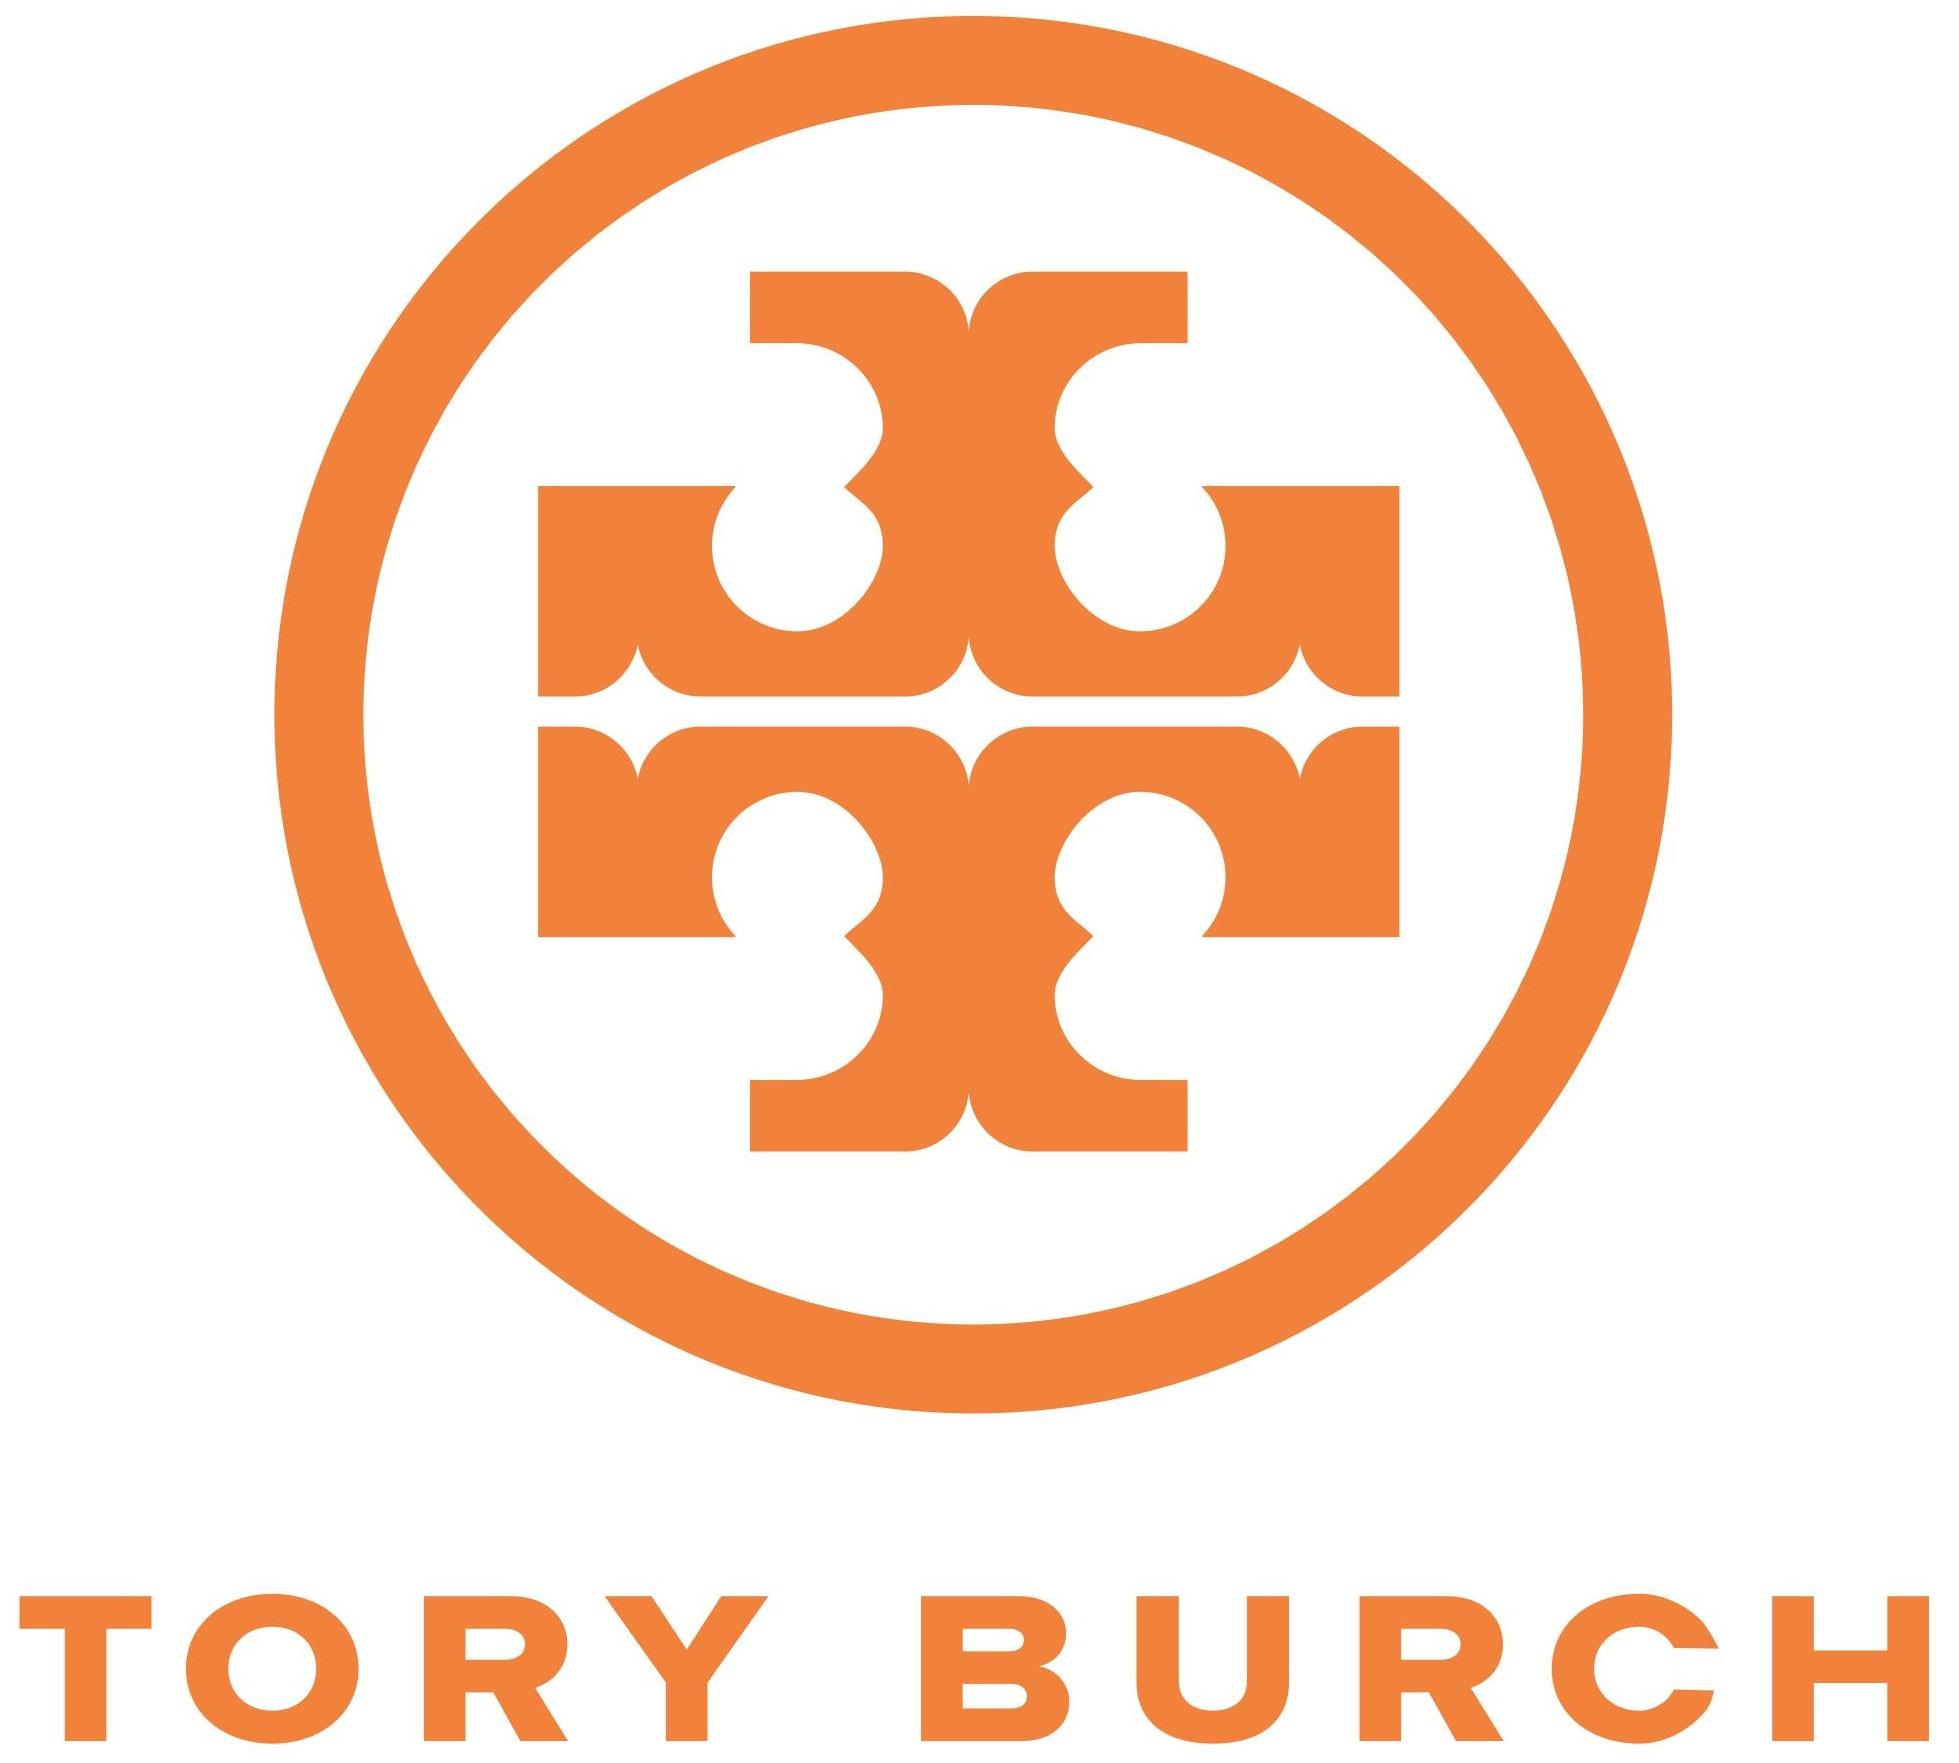 40% Off Select Tory Burch Handbags @ Tory Burch